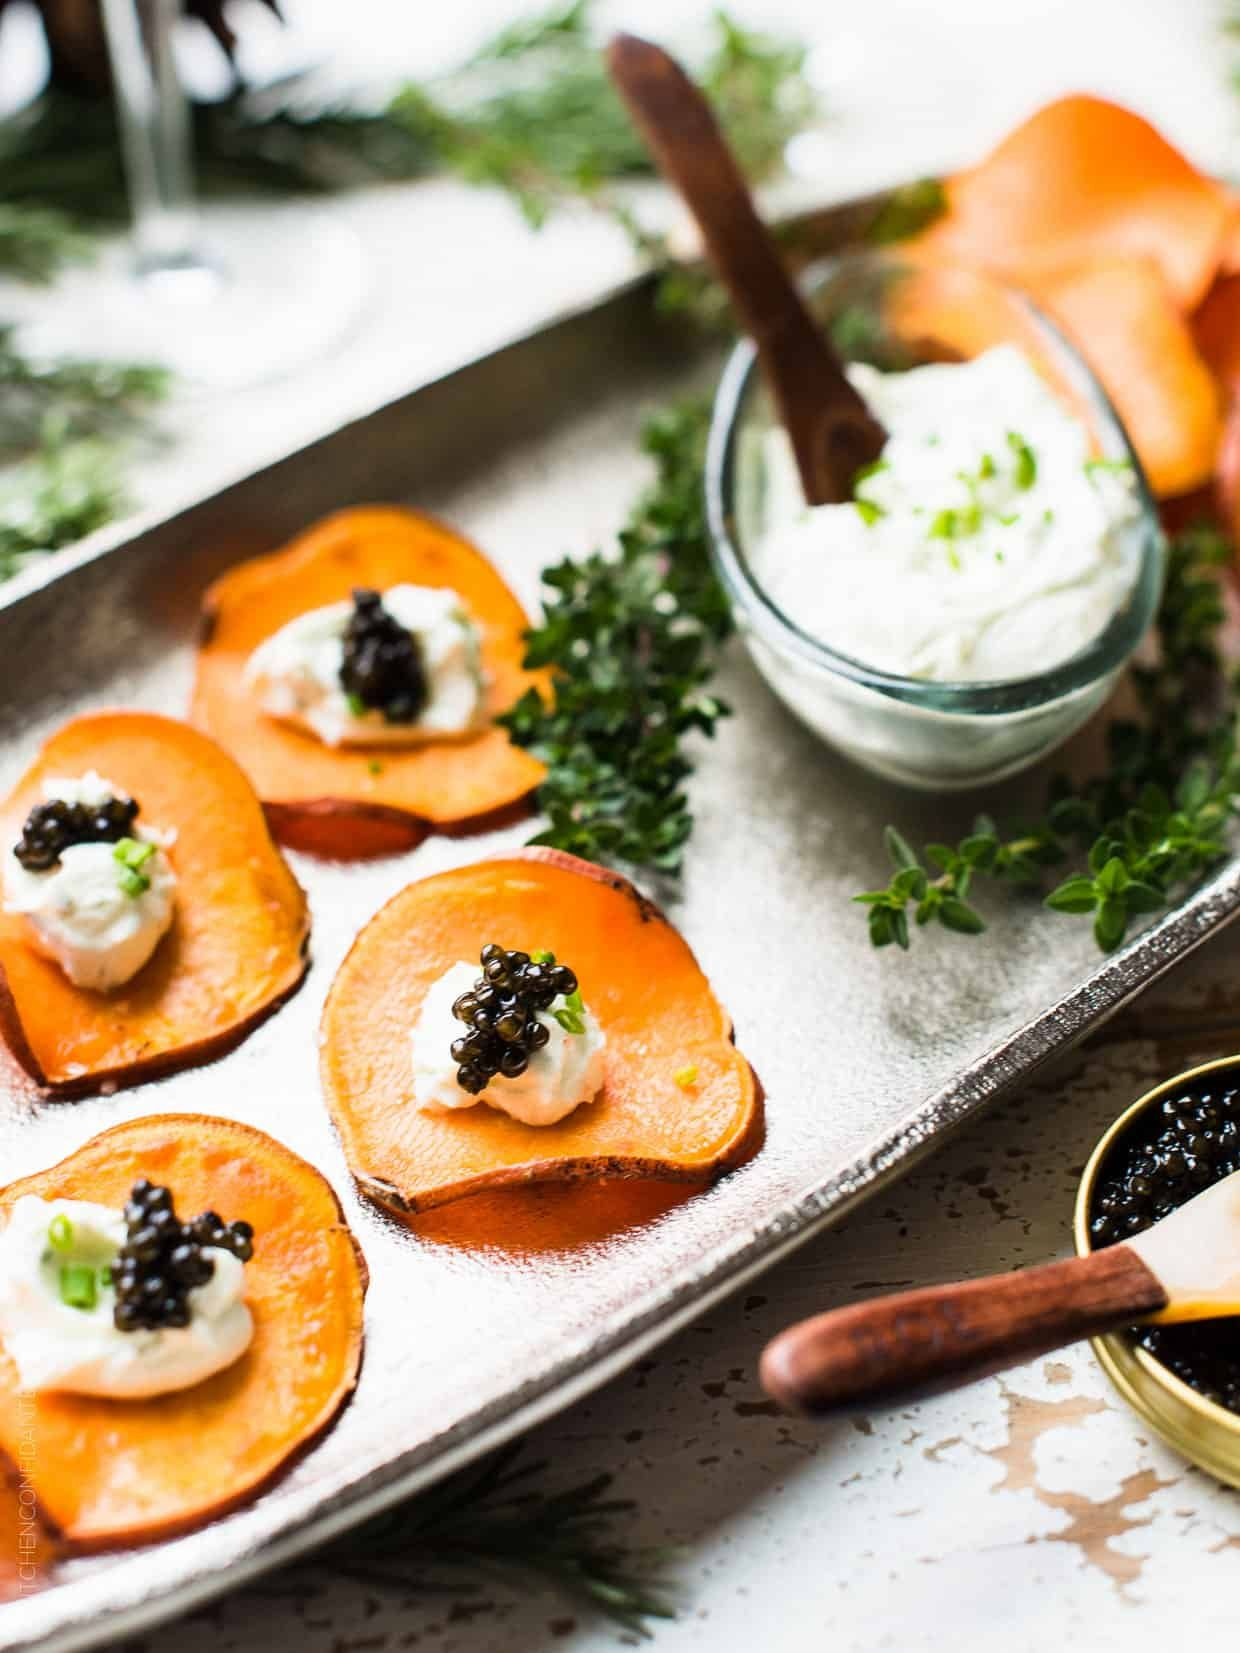 Sweet Potato Chips with Whipped Goat Cheese and Caviar | Kitchen Confidante®